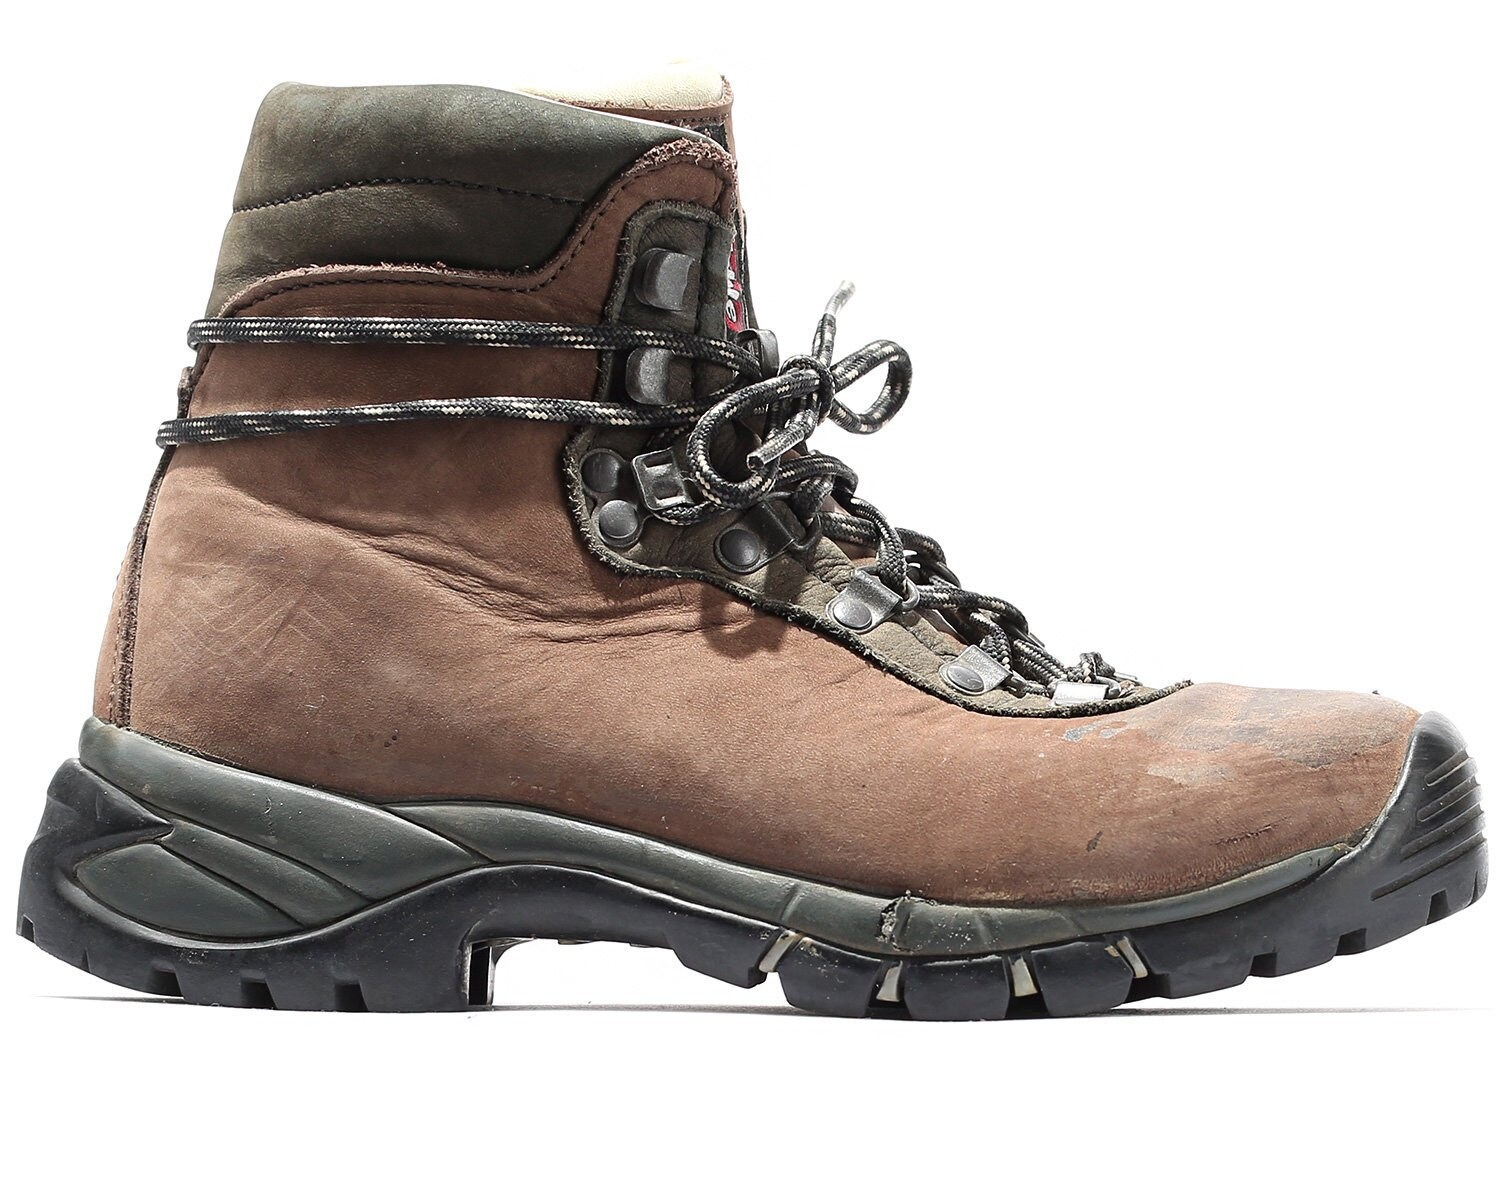 d52a9364752 US wom 6 Raichle Mountain Boots 90s Swiss Hiking Trekking Brown Nubuck  Leather Boots Wild TRAIL Camping Boots Mountaineering Eu 36.5 UK 3.5